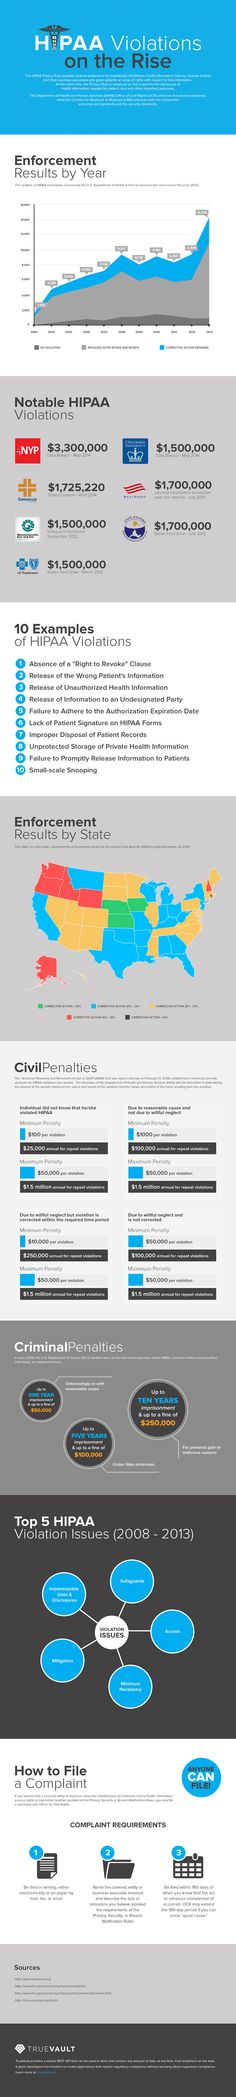 Rise of HIPAA Violations Infographic | HIPAA - HIT Consultant